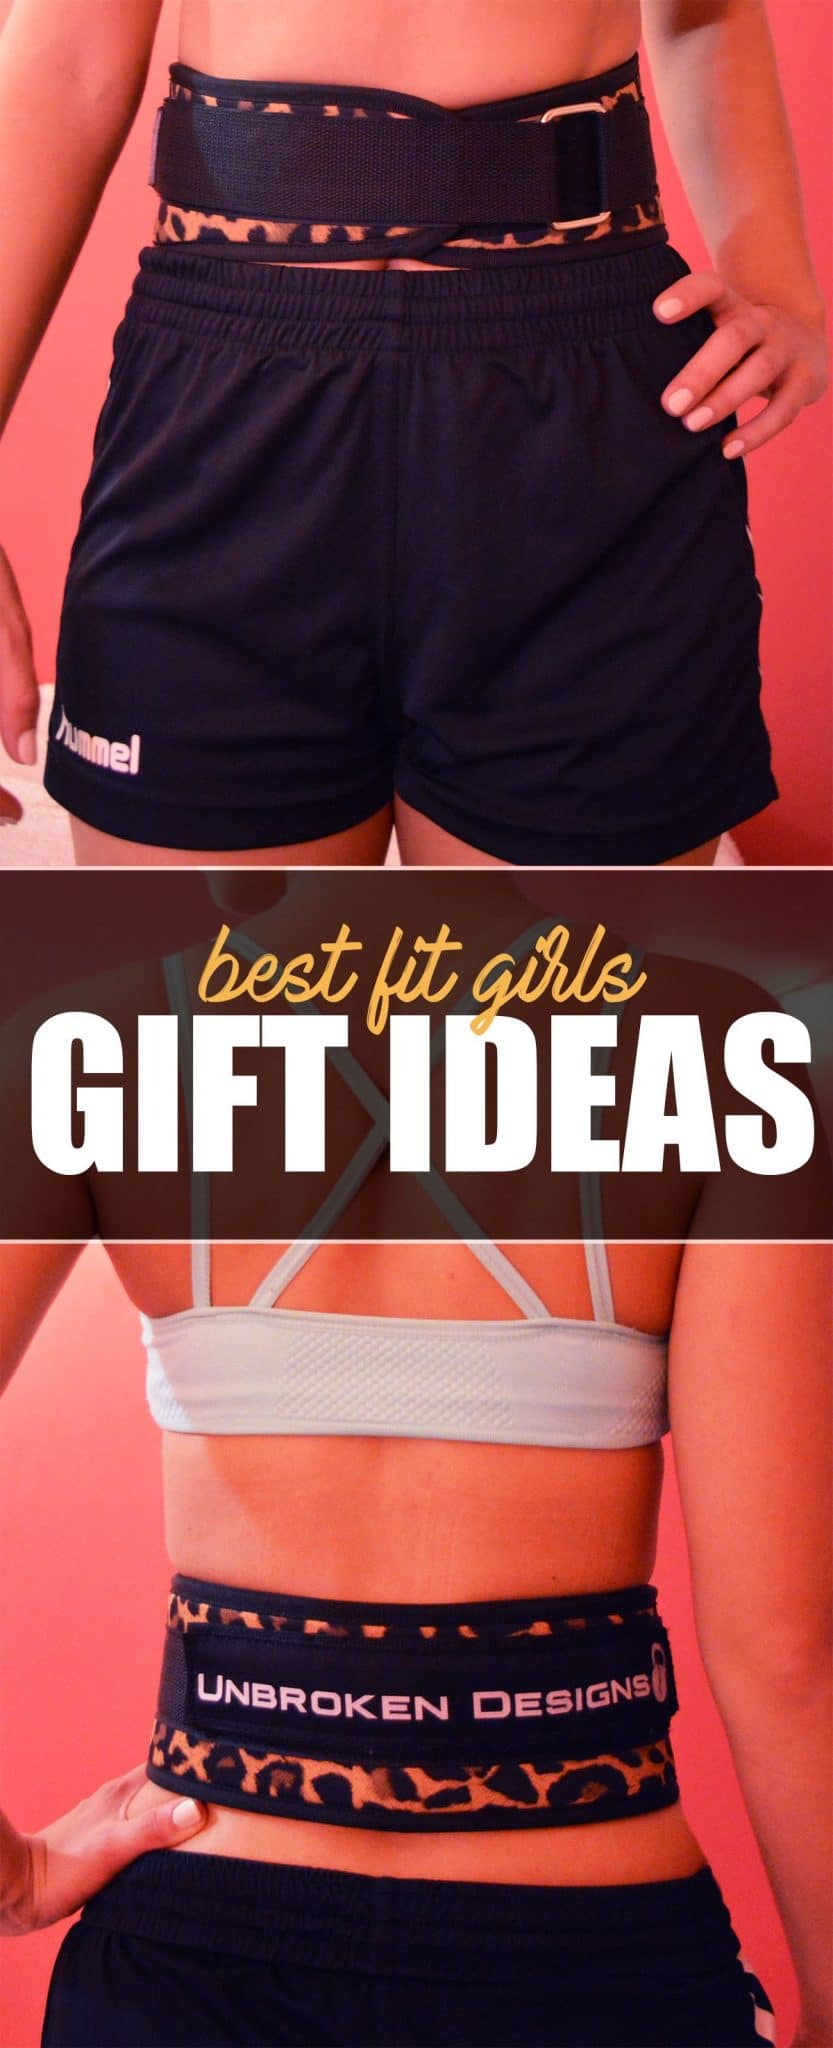 25-fitness-gift-ideas-the-best-fit-girls-christmas-presents-liftingbelt